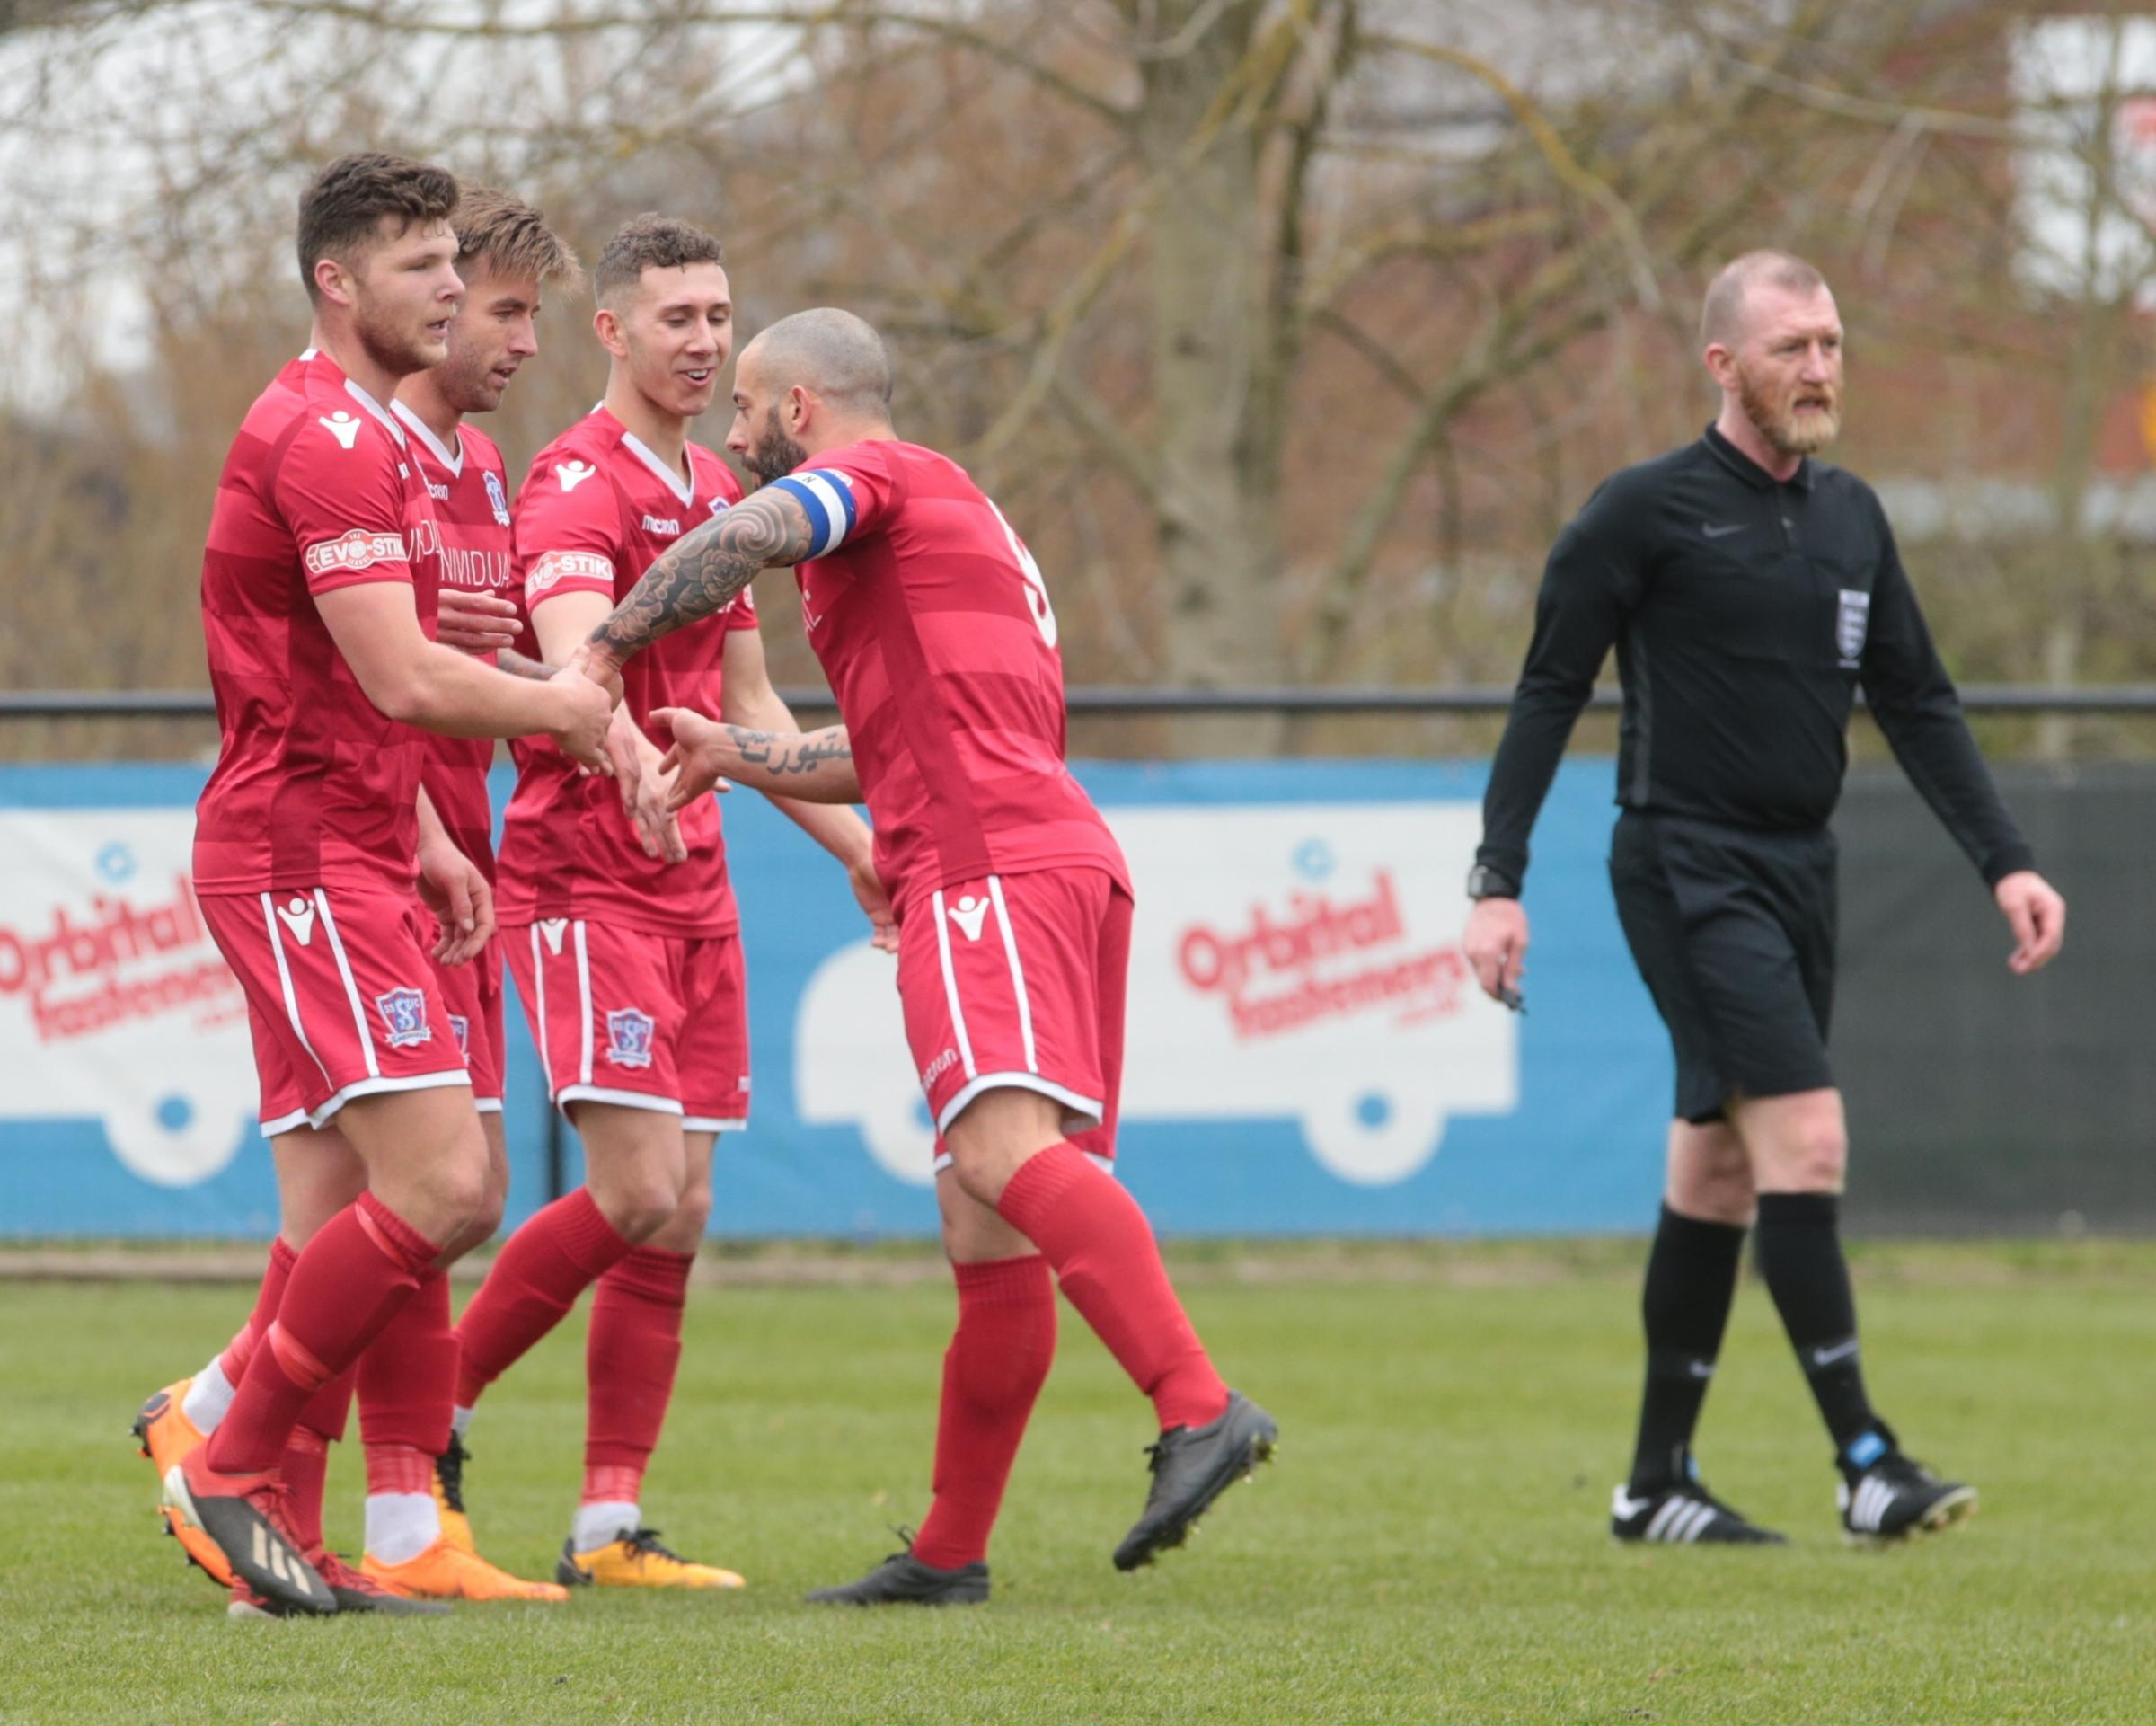 Swindon Supermarine celebrate a goal during last weekend's win at Kings Stanley. The South Marston side are looking to follow that up with another victory at home to Metropolitan Police in Southern League Premier Division on Saturday		      Picture: